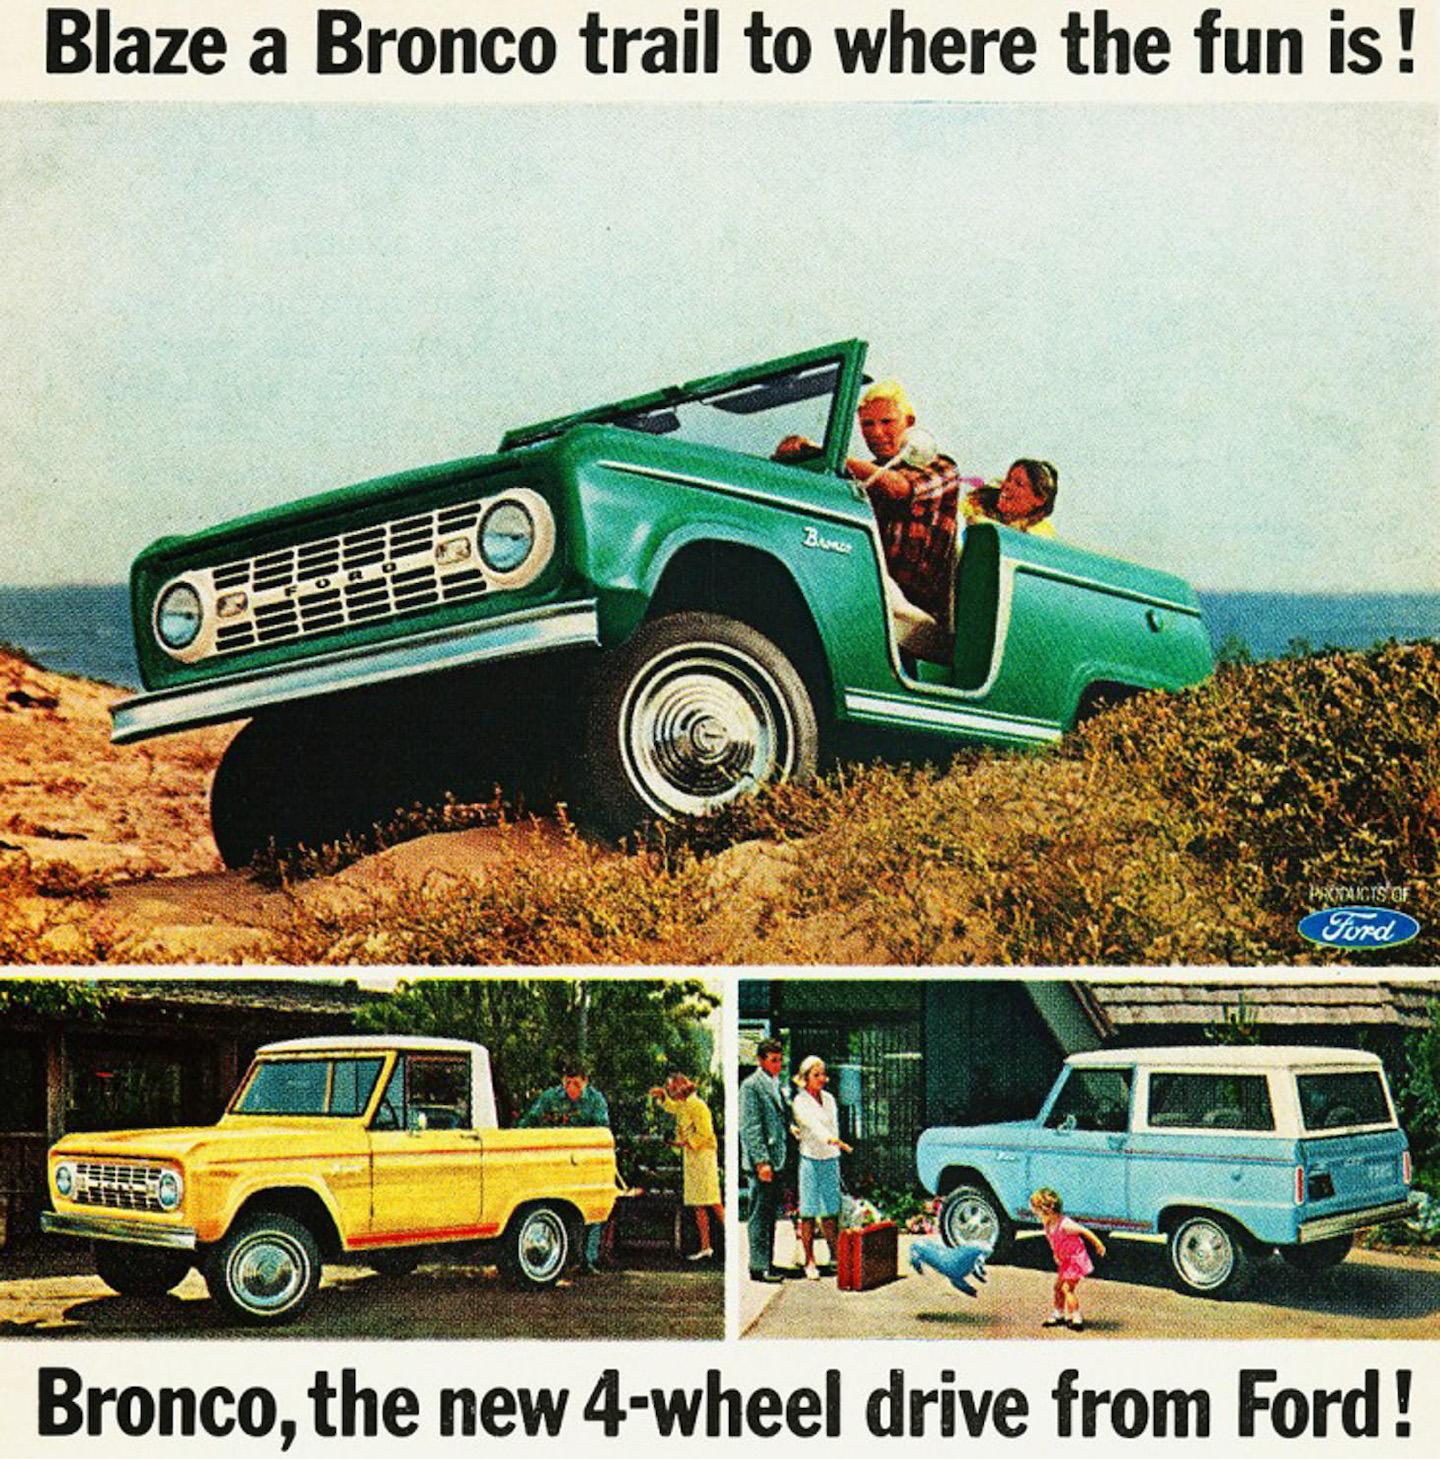 first-generation Ford Bronco, first-generation Bronco, Bronco, Ford Bronco, uncut Bronco